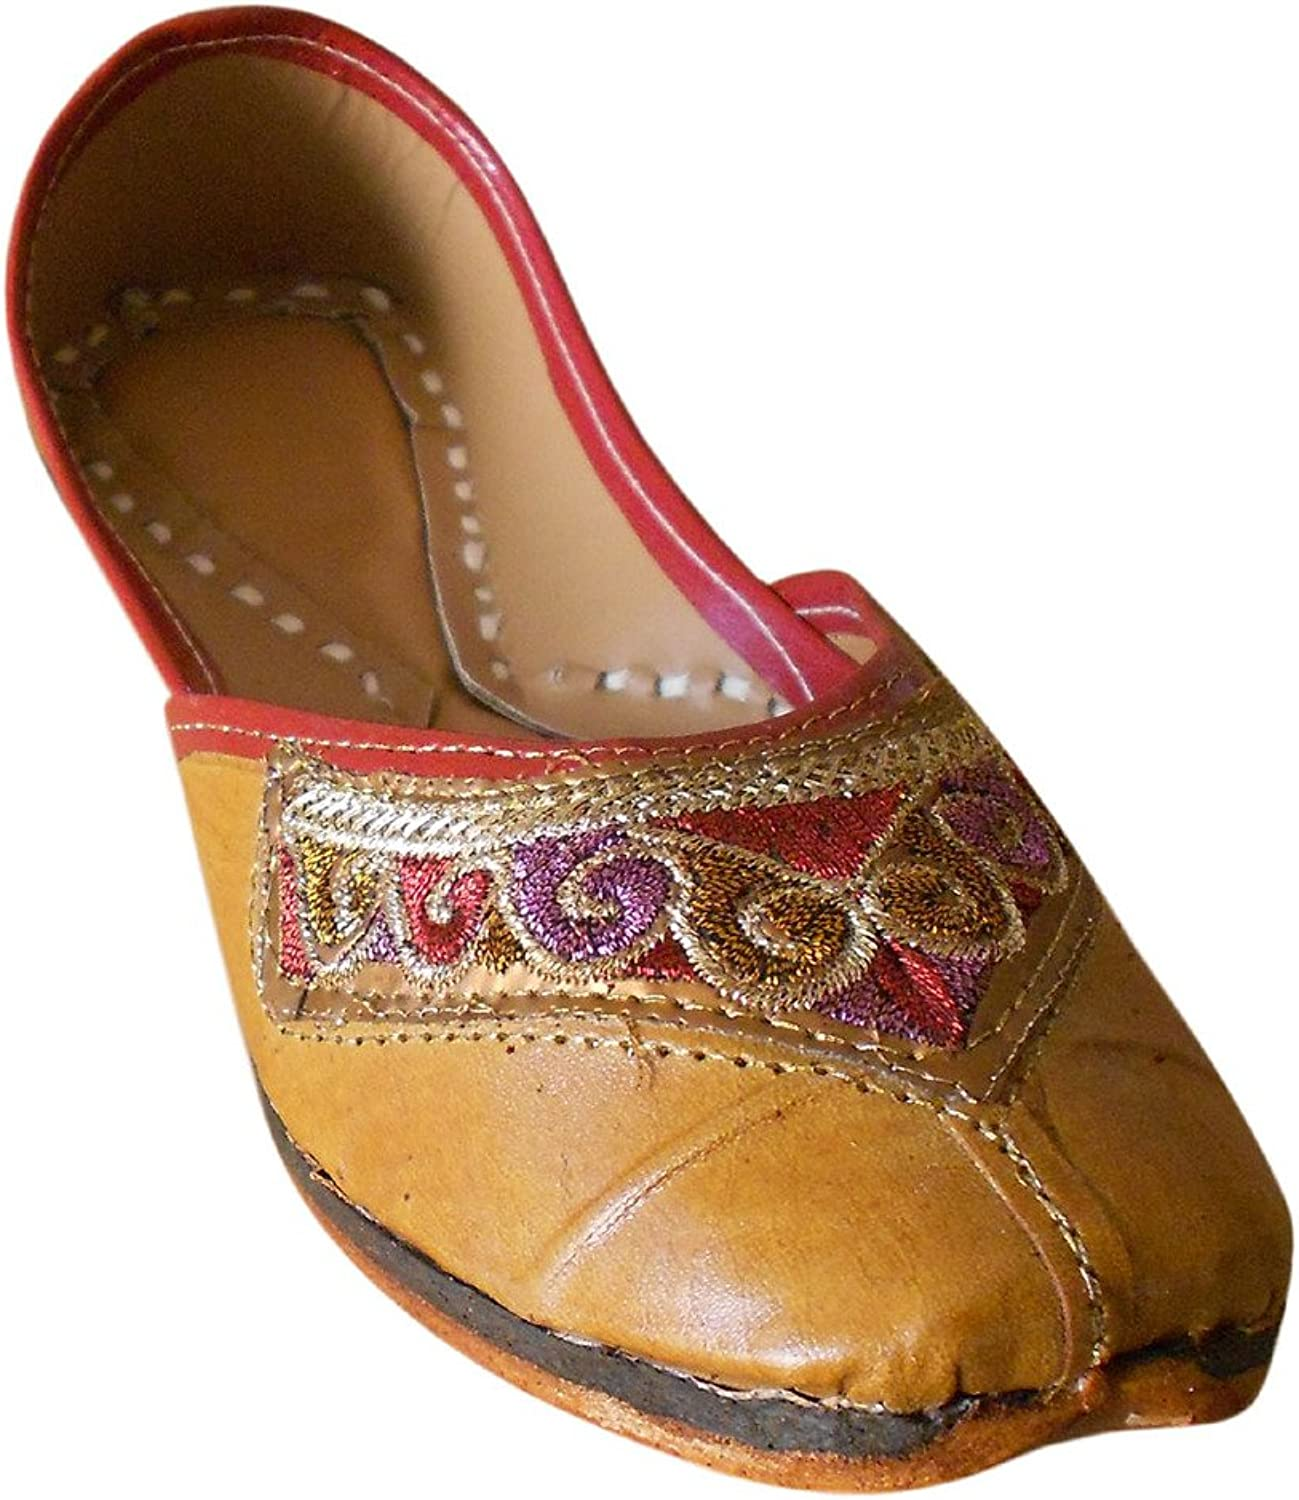 Kalra Creations Women's Traditional Indian Faux Leather Wedding shoes